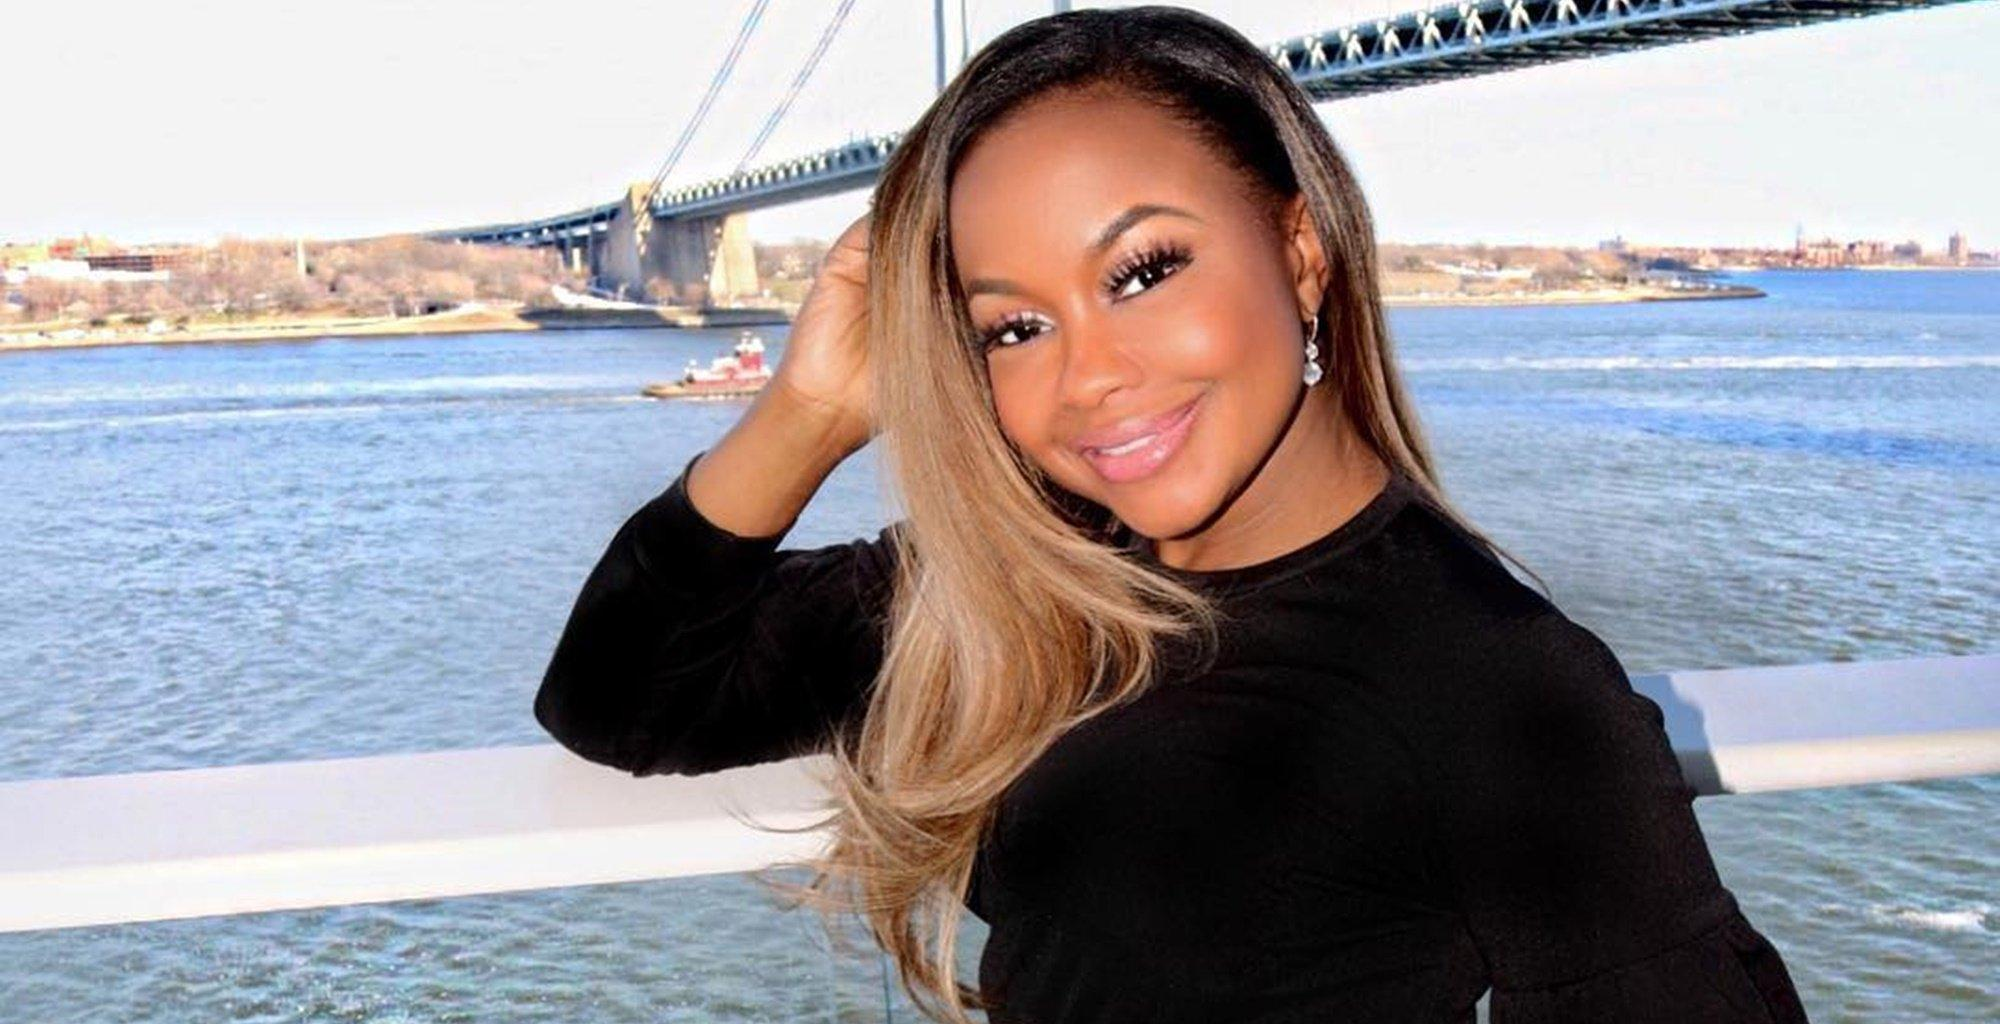 Phaedra Parks' Clips Featuring Her Two Sons Make Fans' Day - Watch Them Here